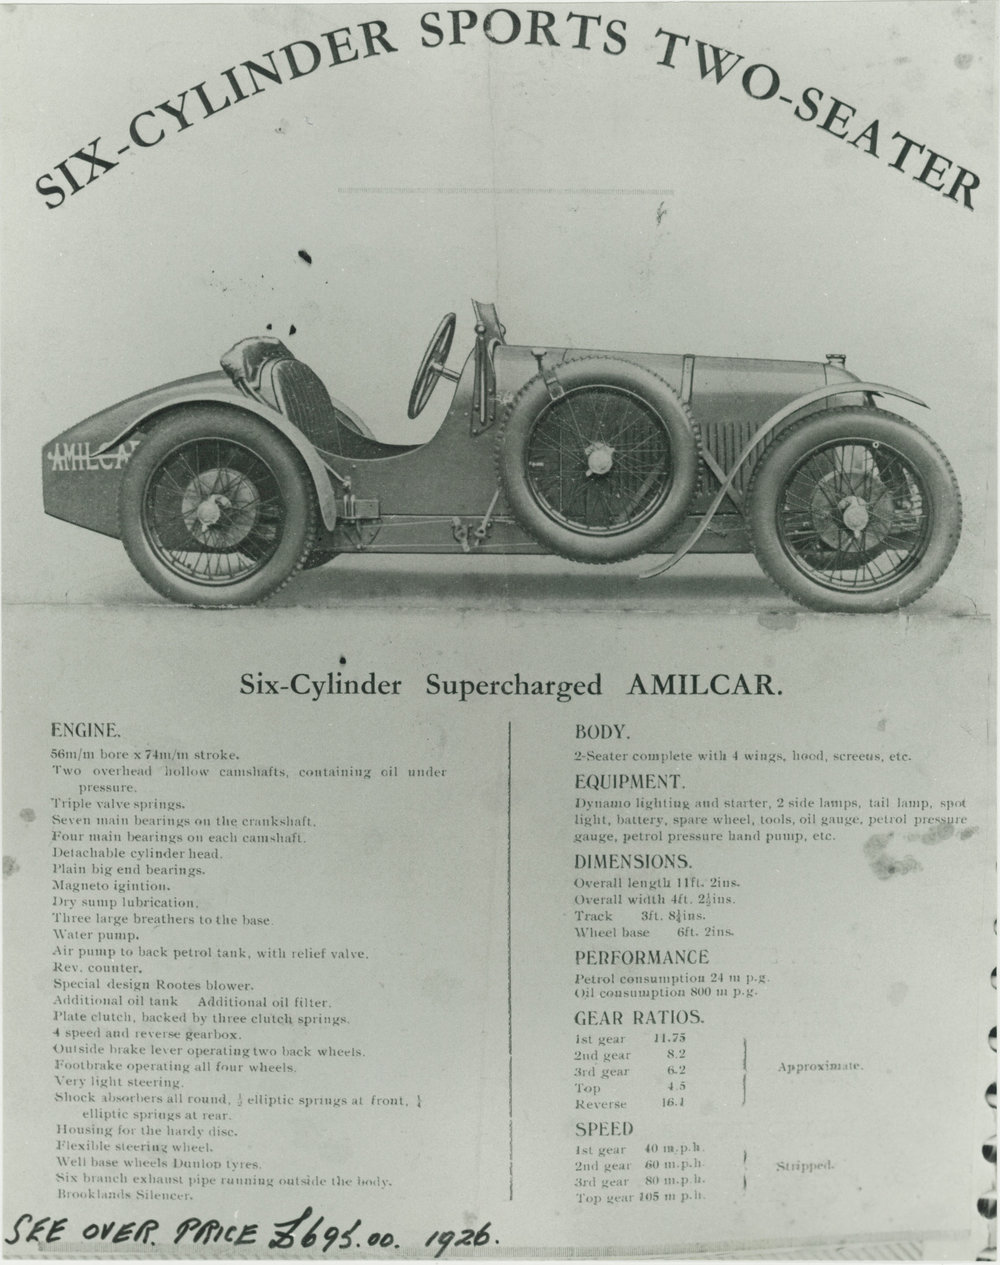 The original UK sales brochure.